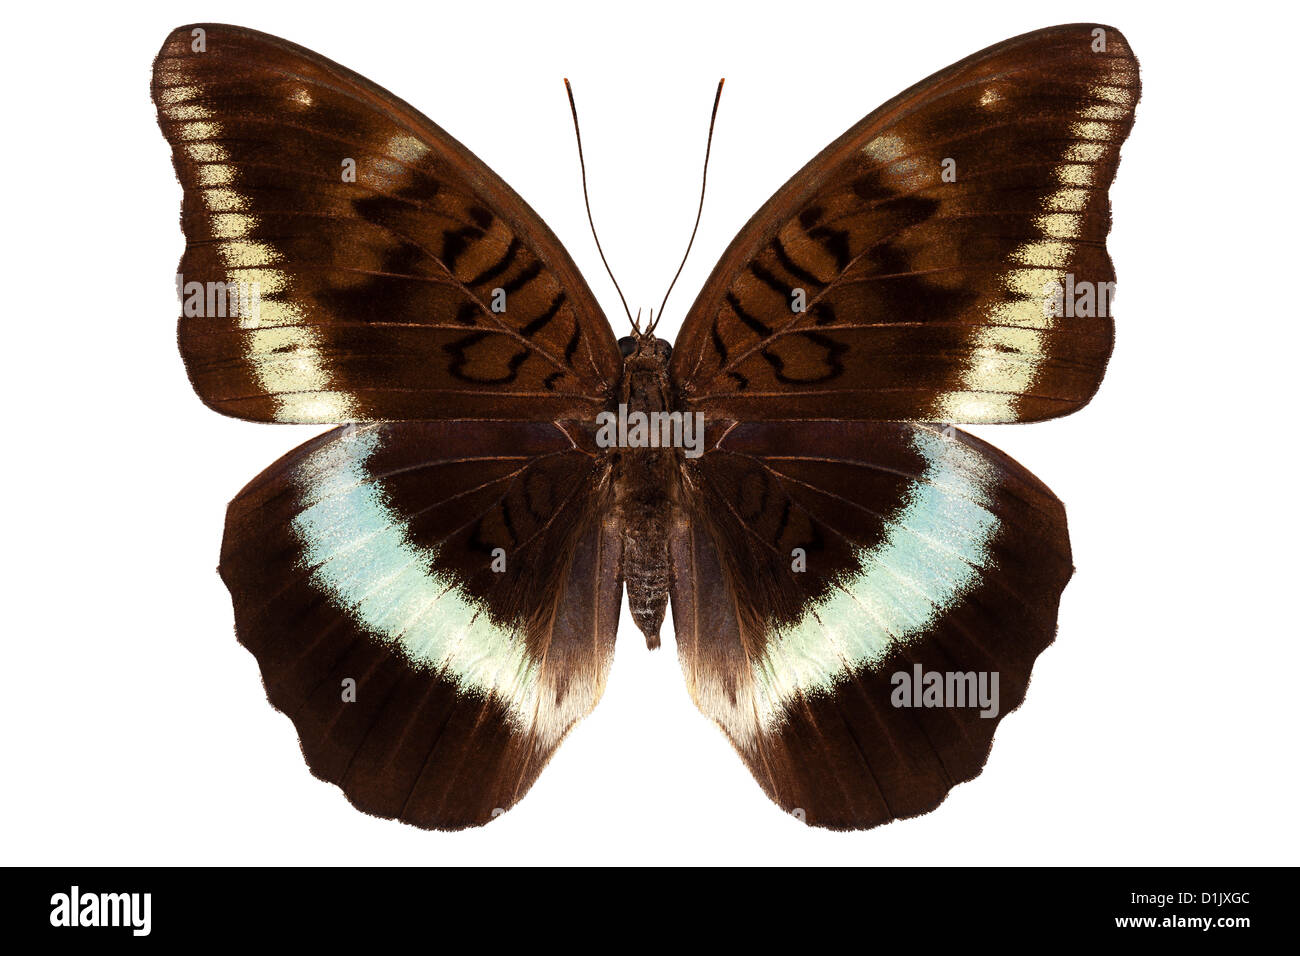 brown Nymphalidae butterfly - Stock Image